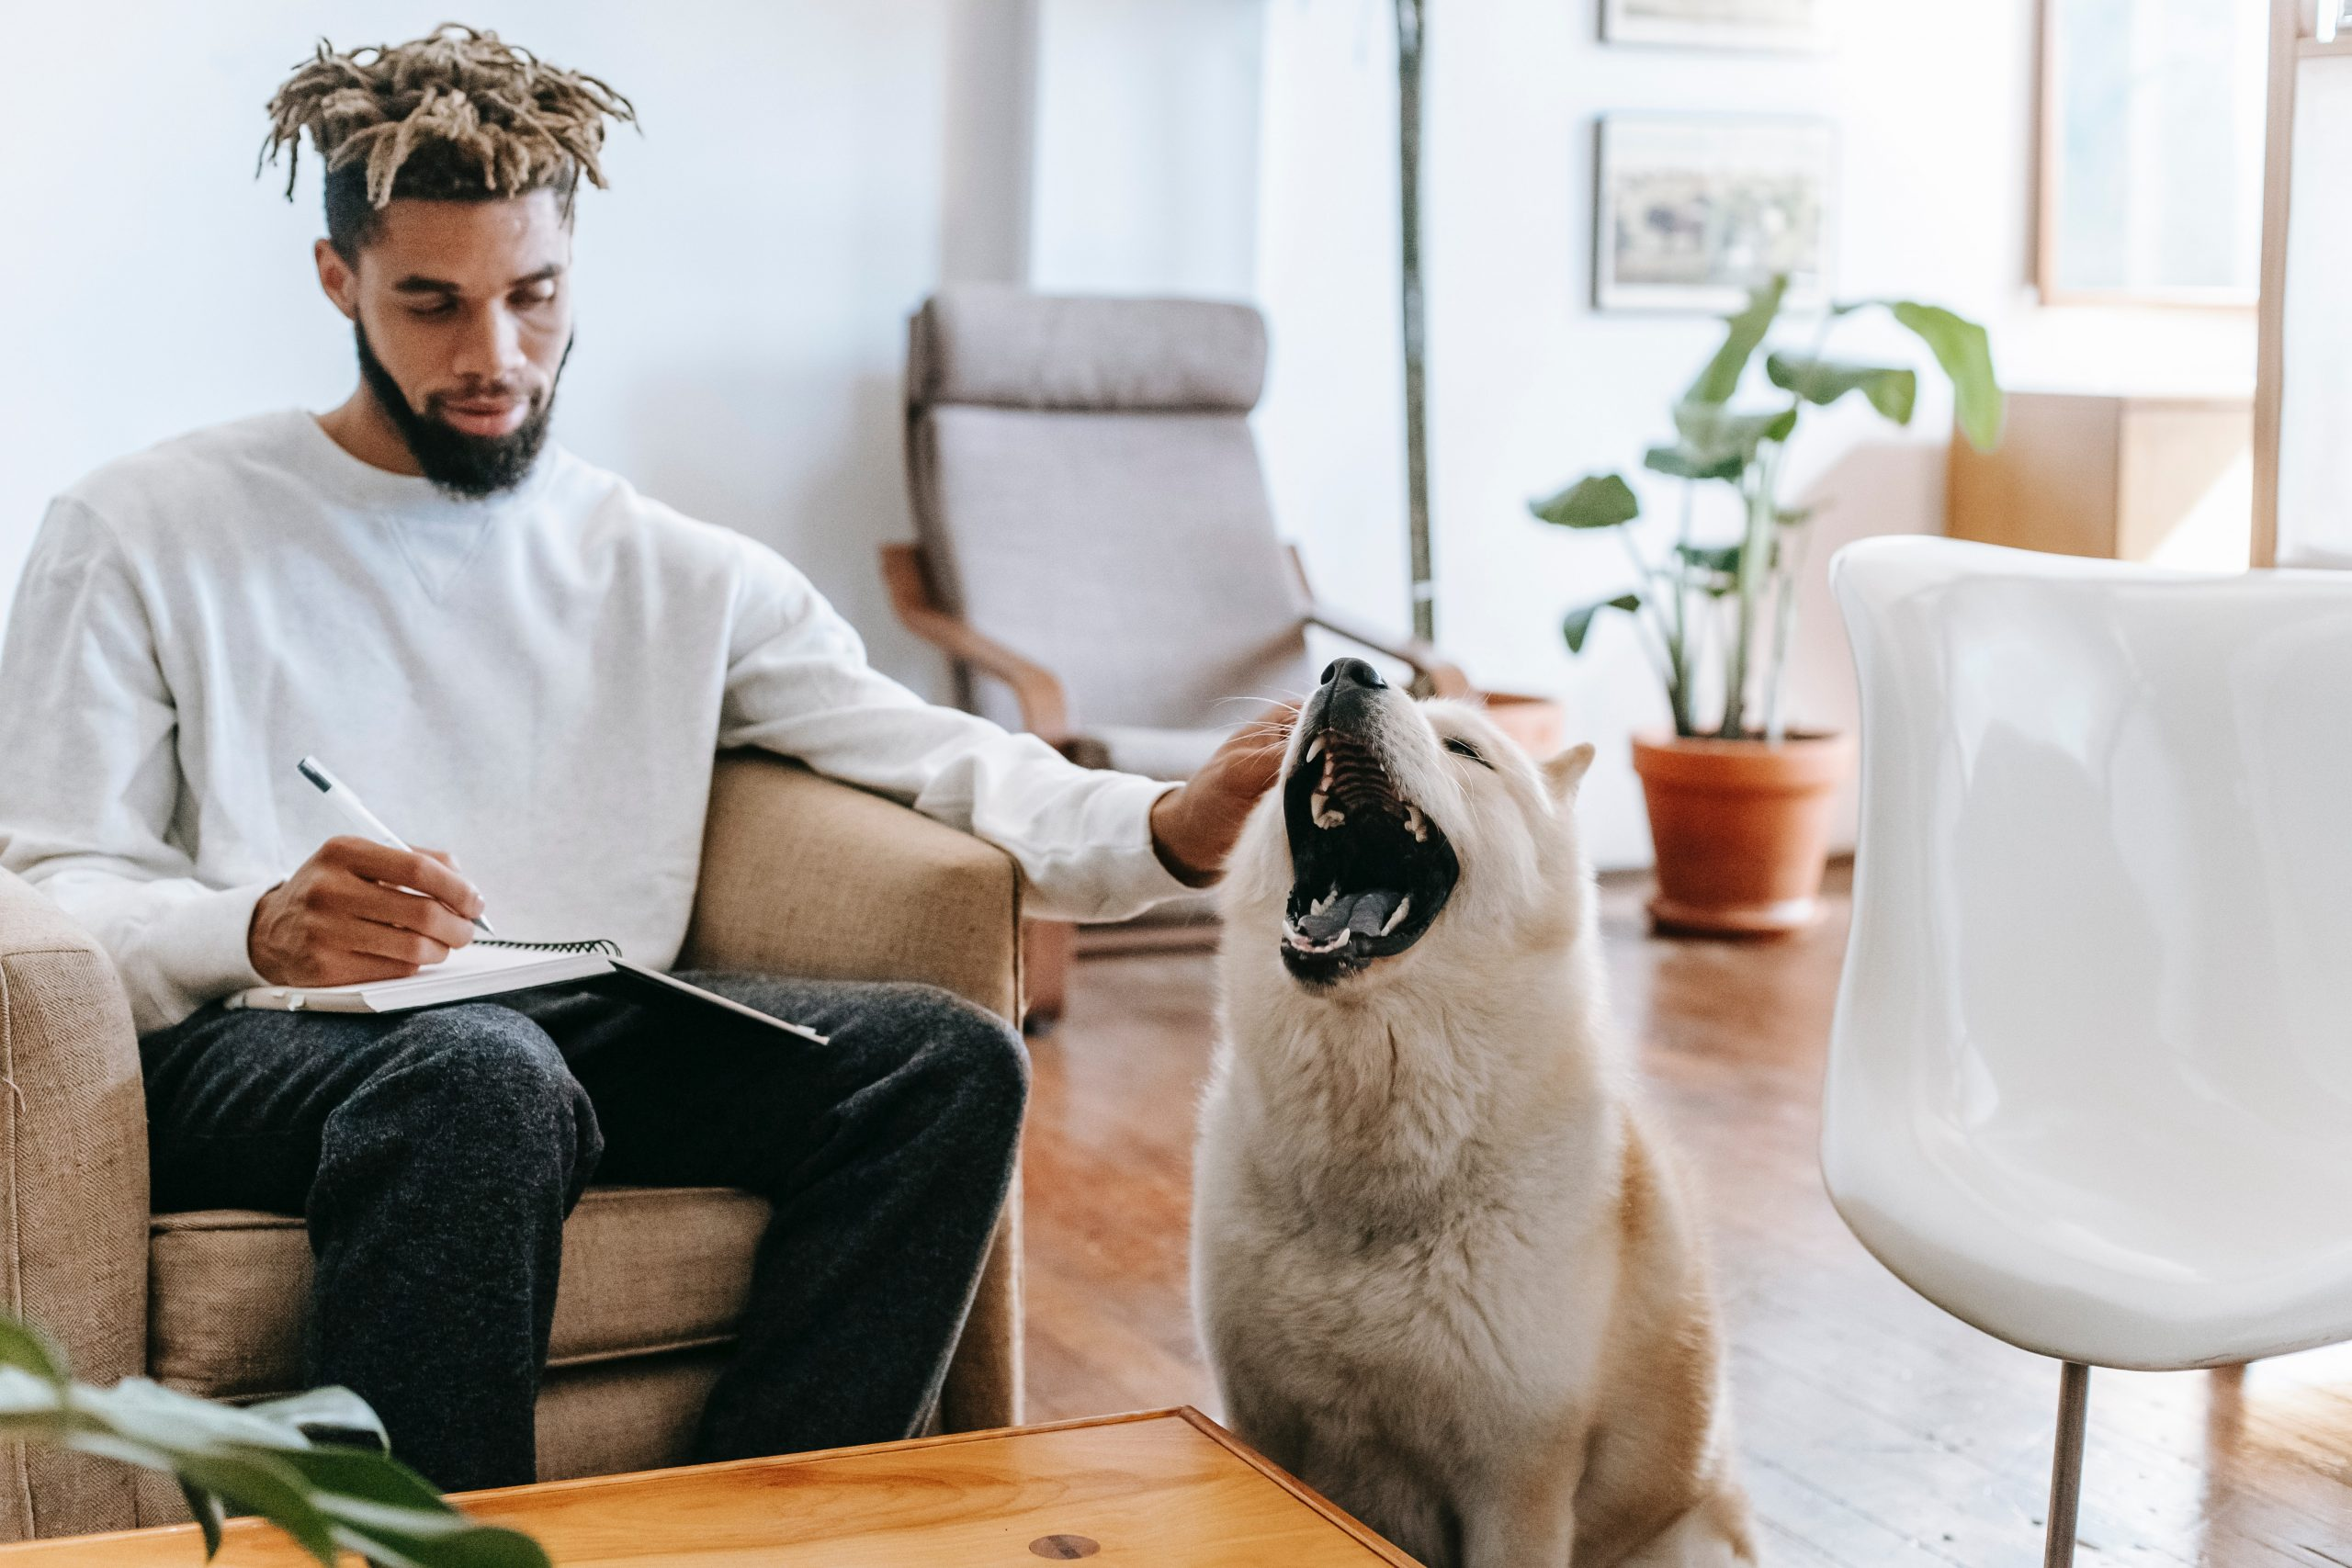 man taking note of his napping schedule in notebook while petting his dog